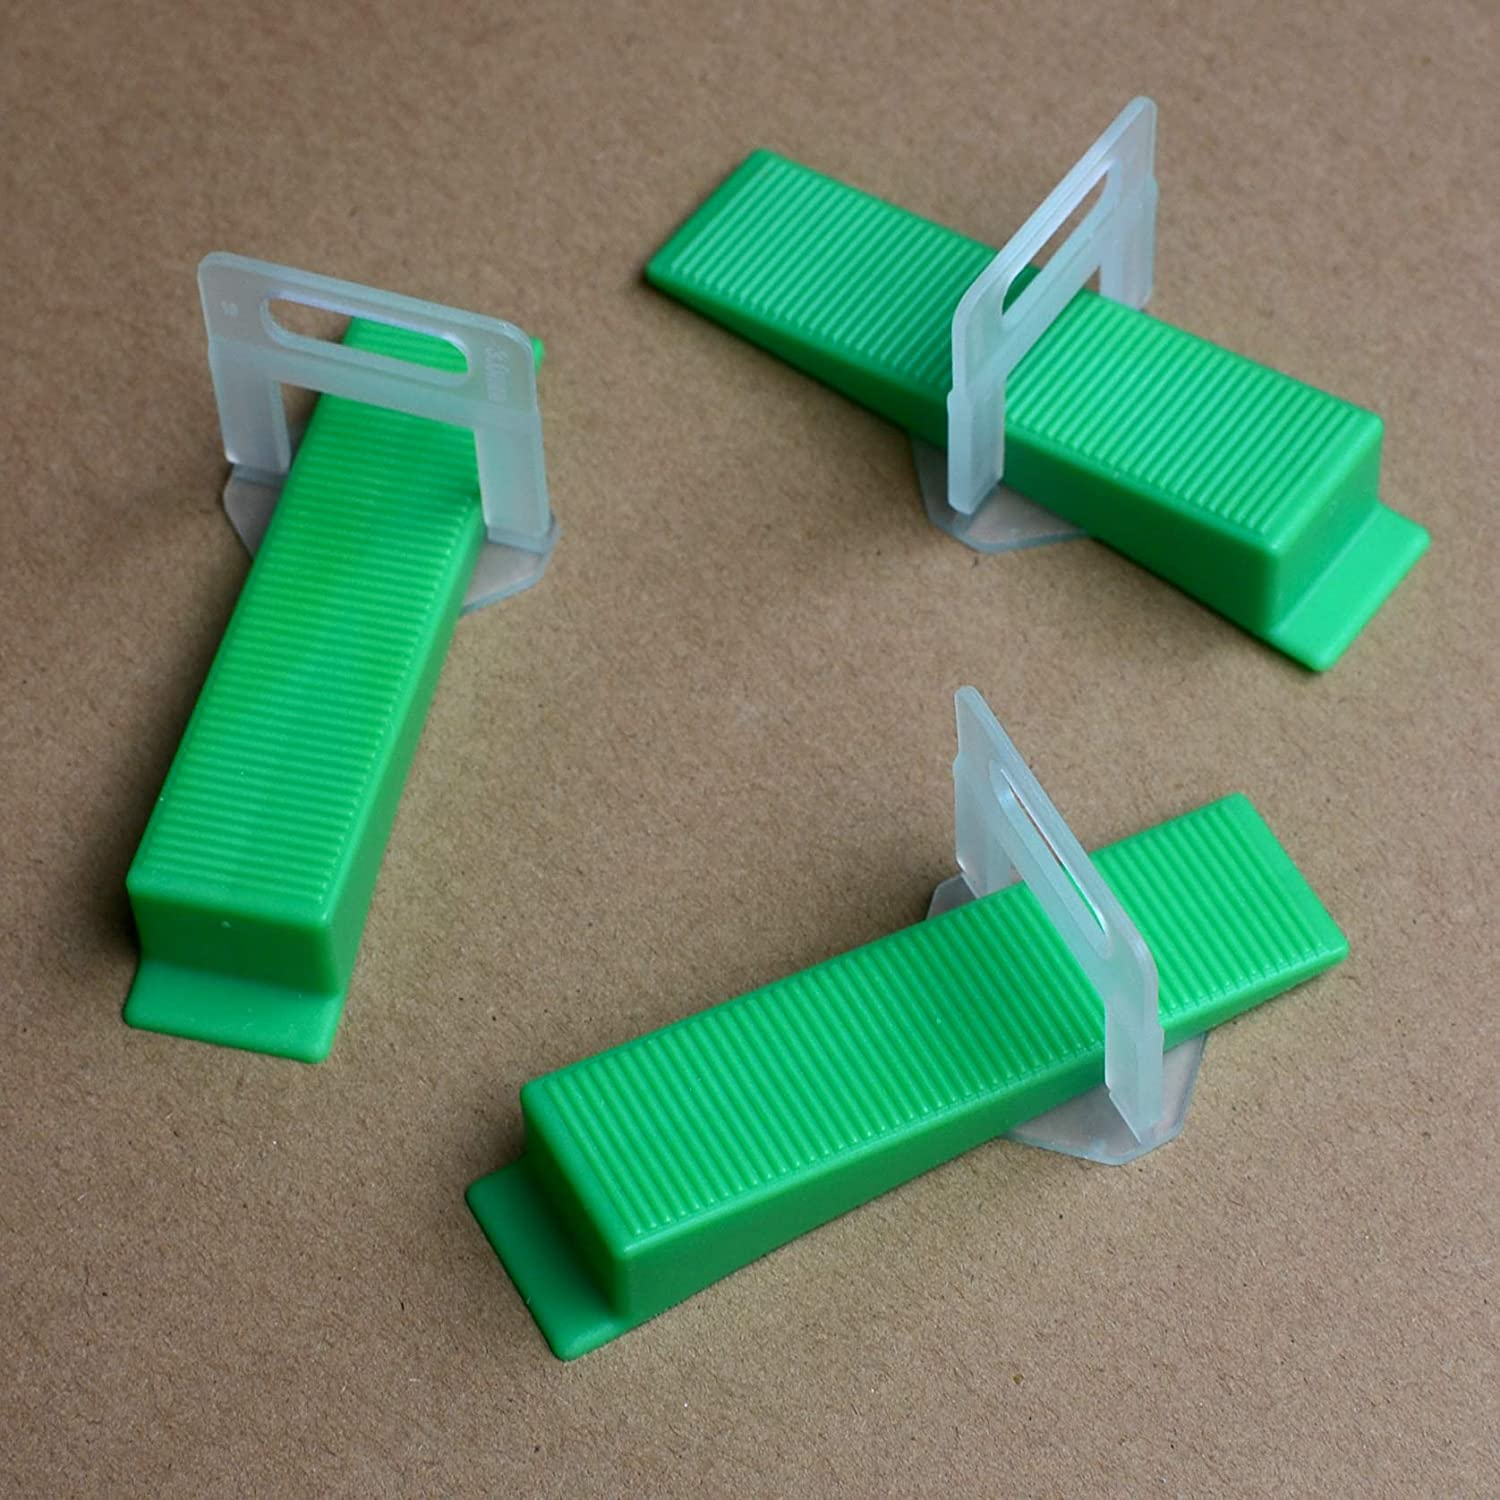 1.5mm DGOL Thick Tiles Leveler Spacers Tile Leveling System Green Wedges 100pcs and Strong Clips 200pcs 1//16 inch